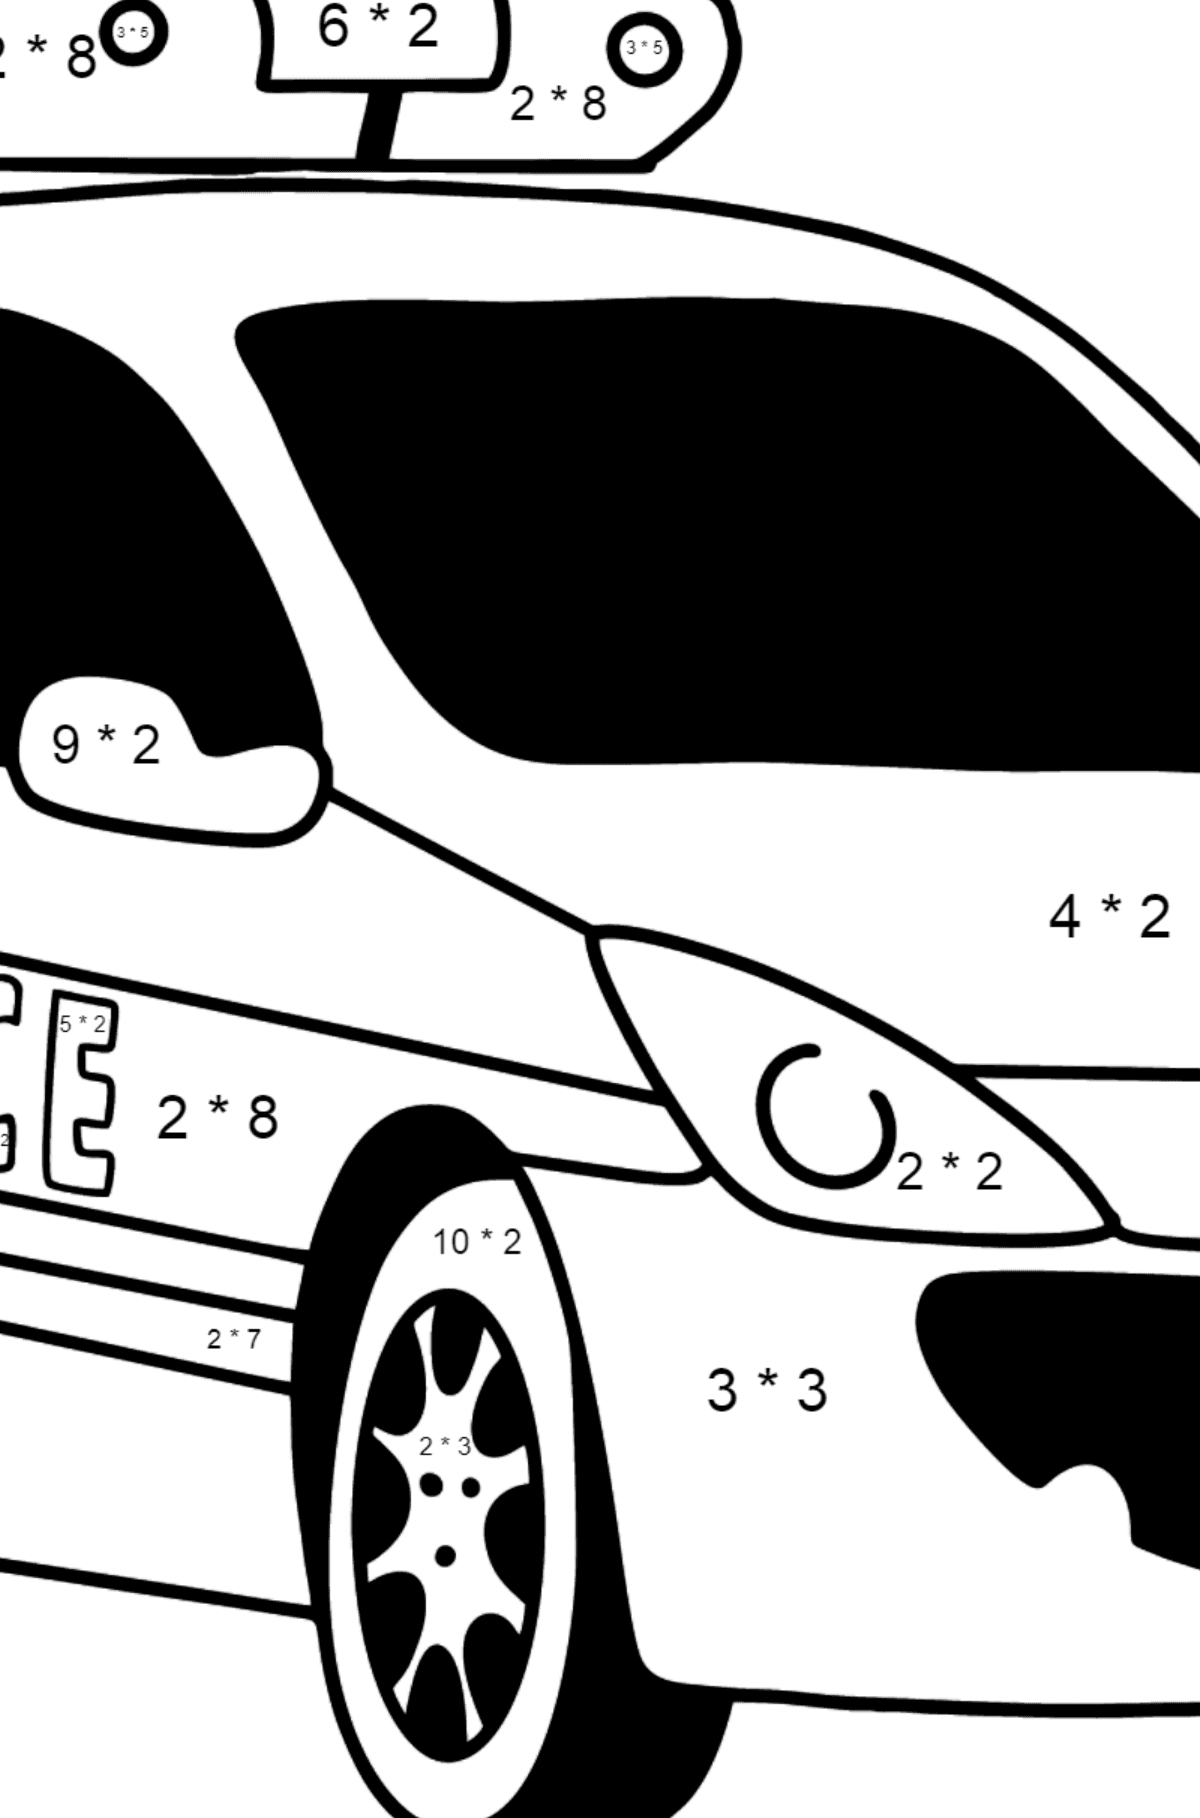 Police Car in France coloring page - Math Coloring - Multiplication for Kids